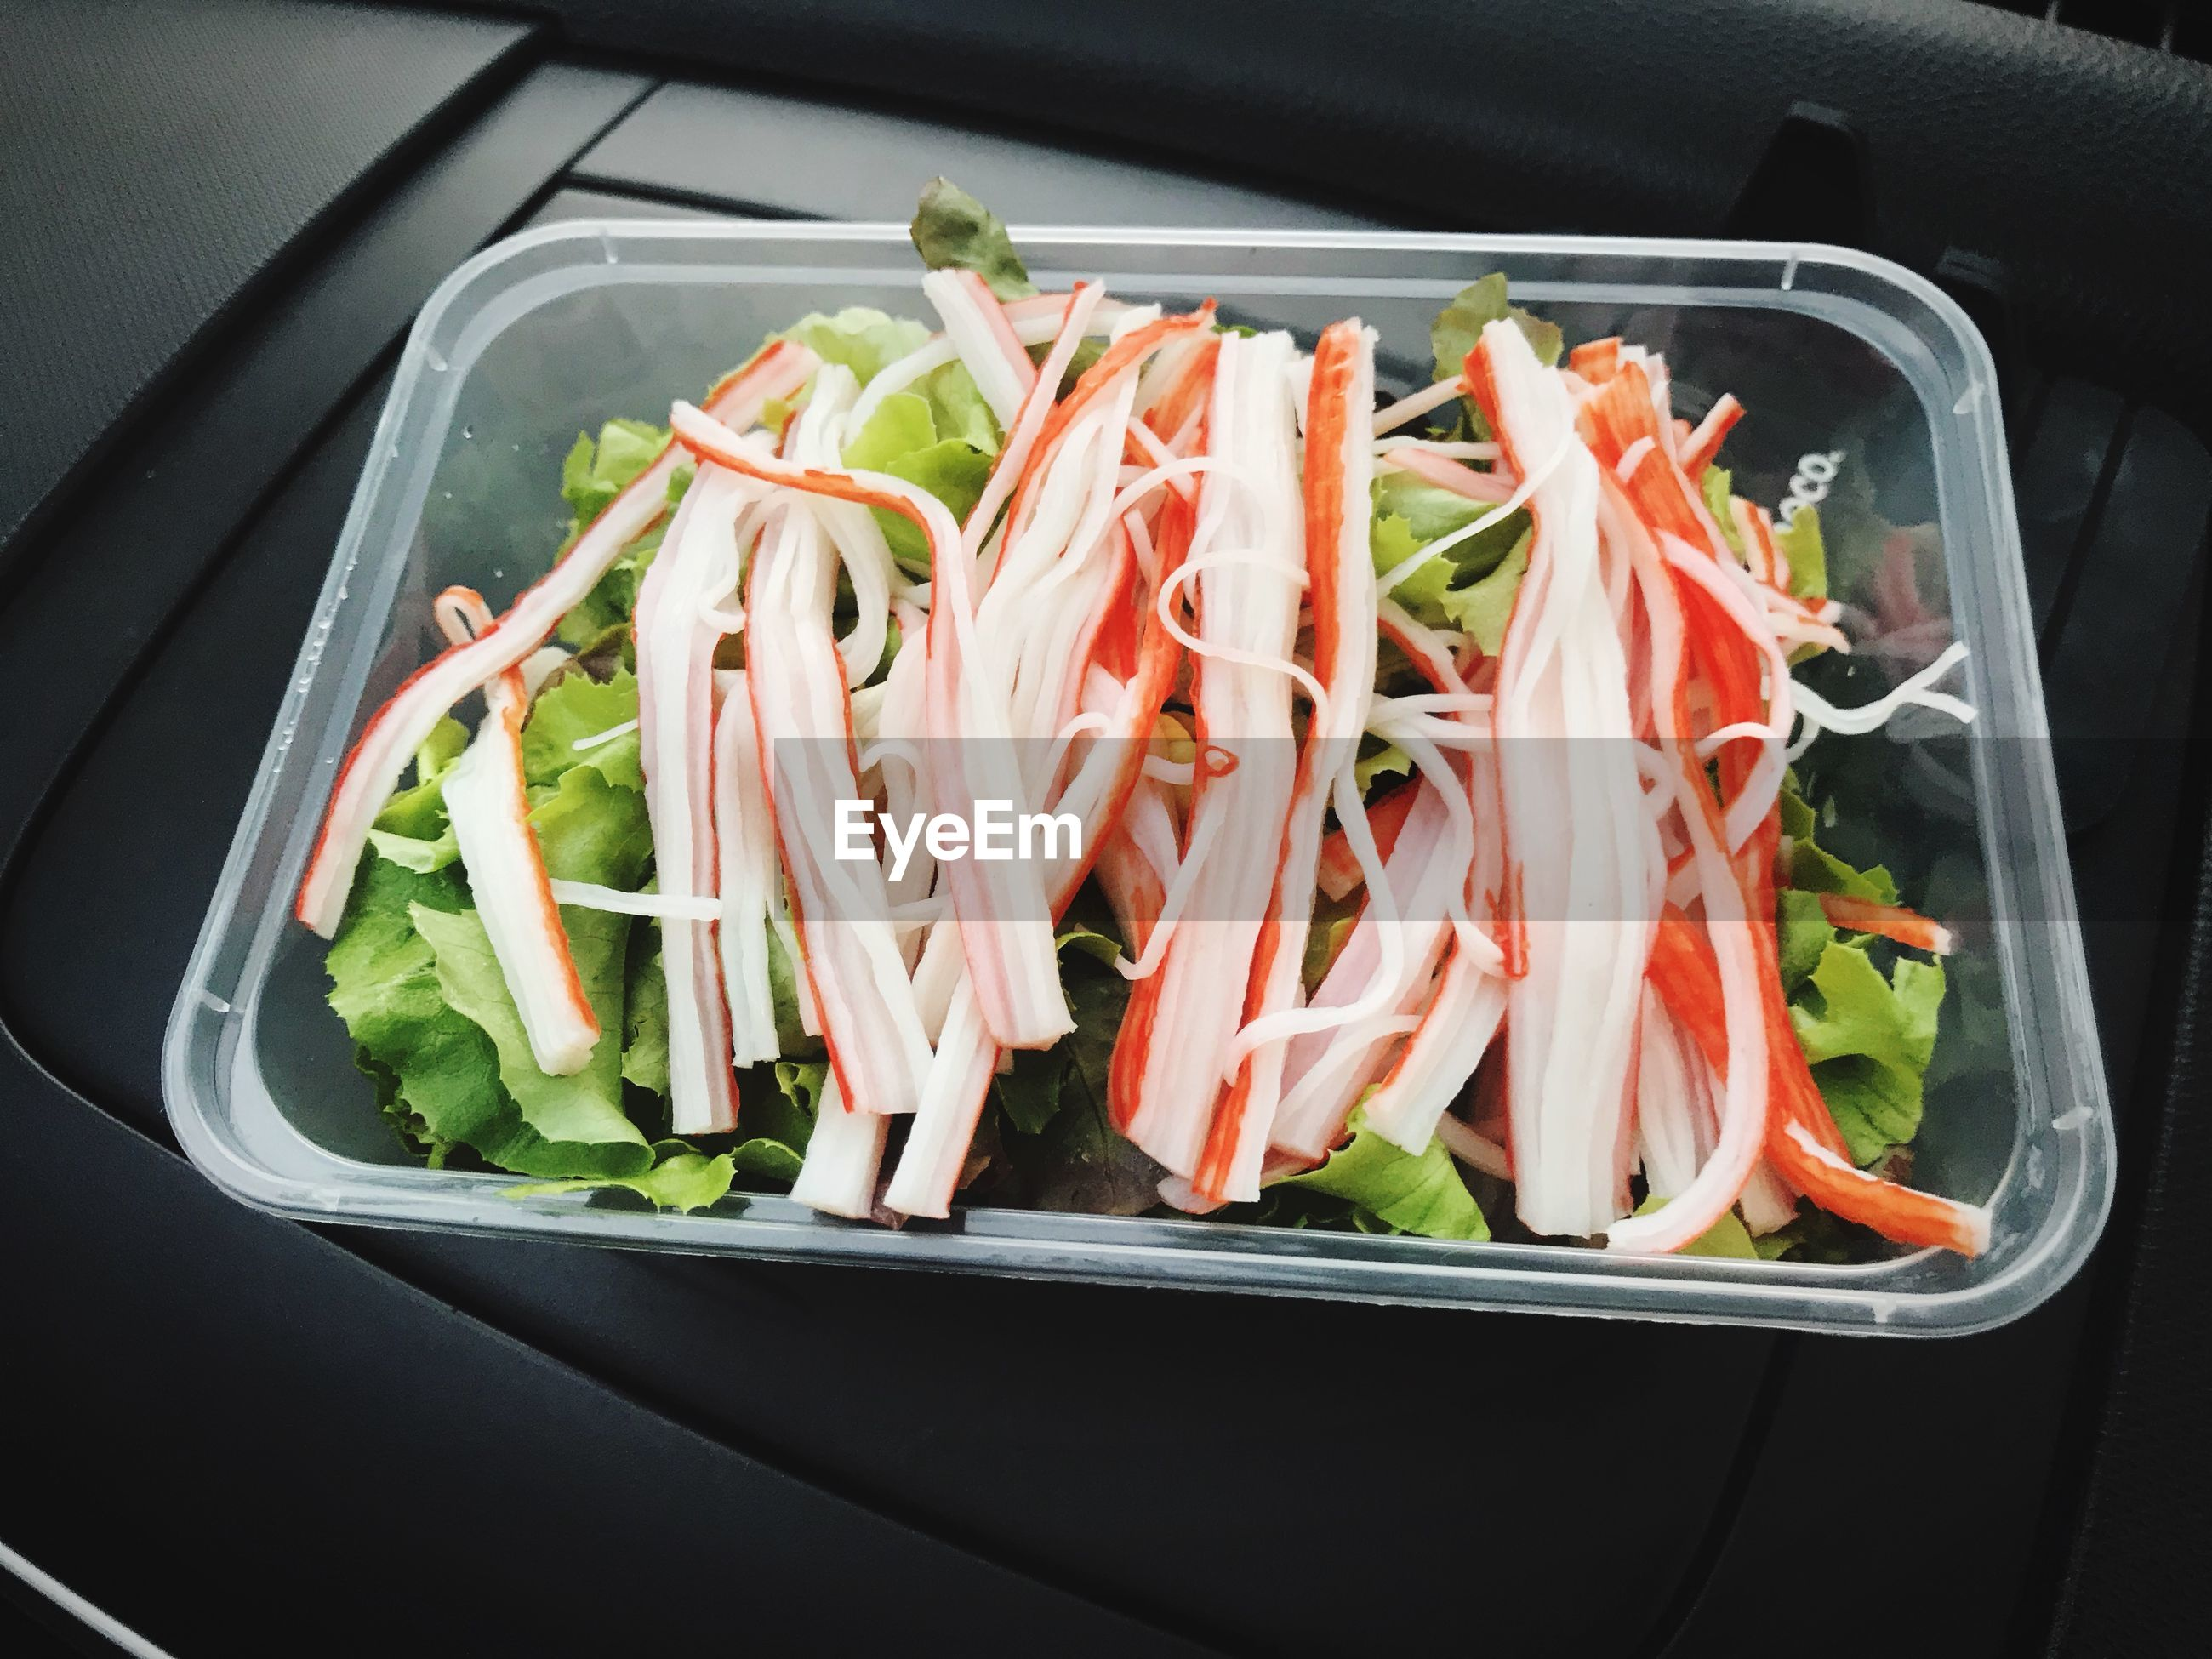 HIGH ANGLE VIEW OF FRESH VEGETABLES IN CONTAINER